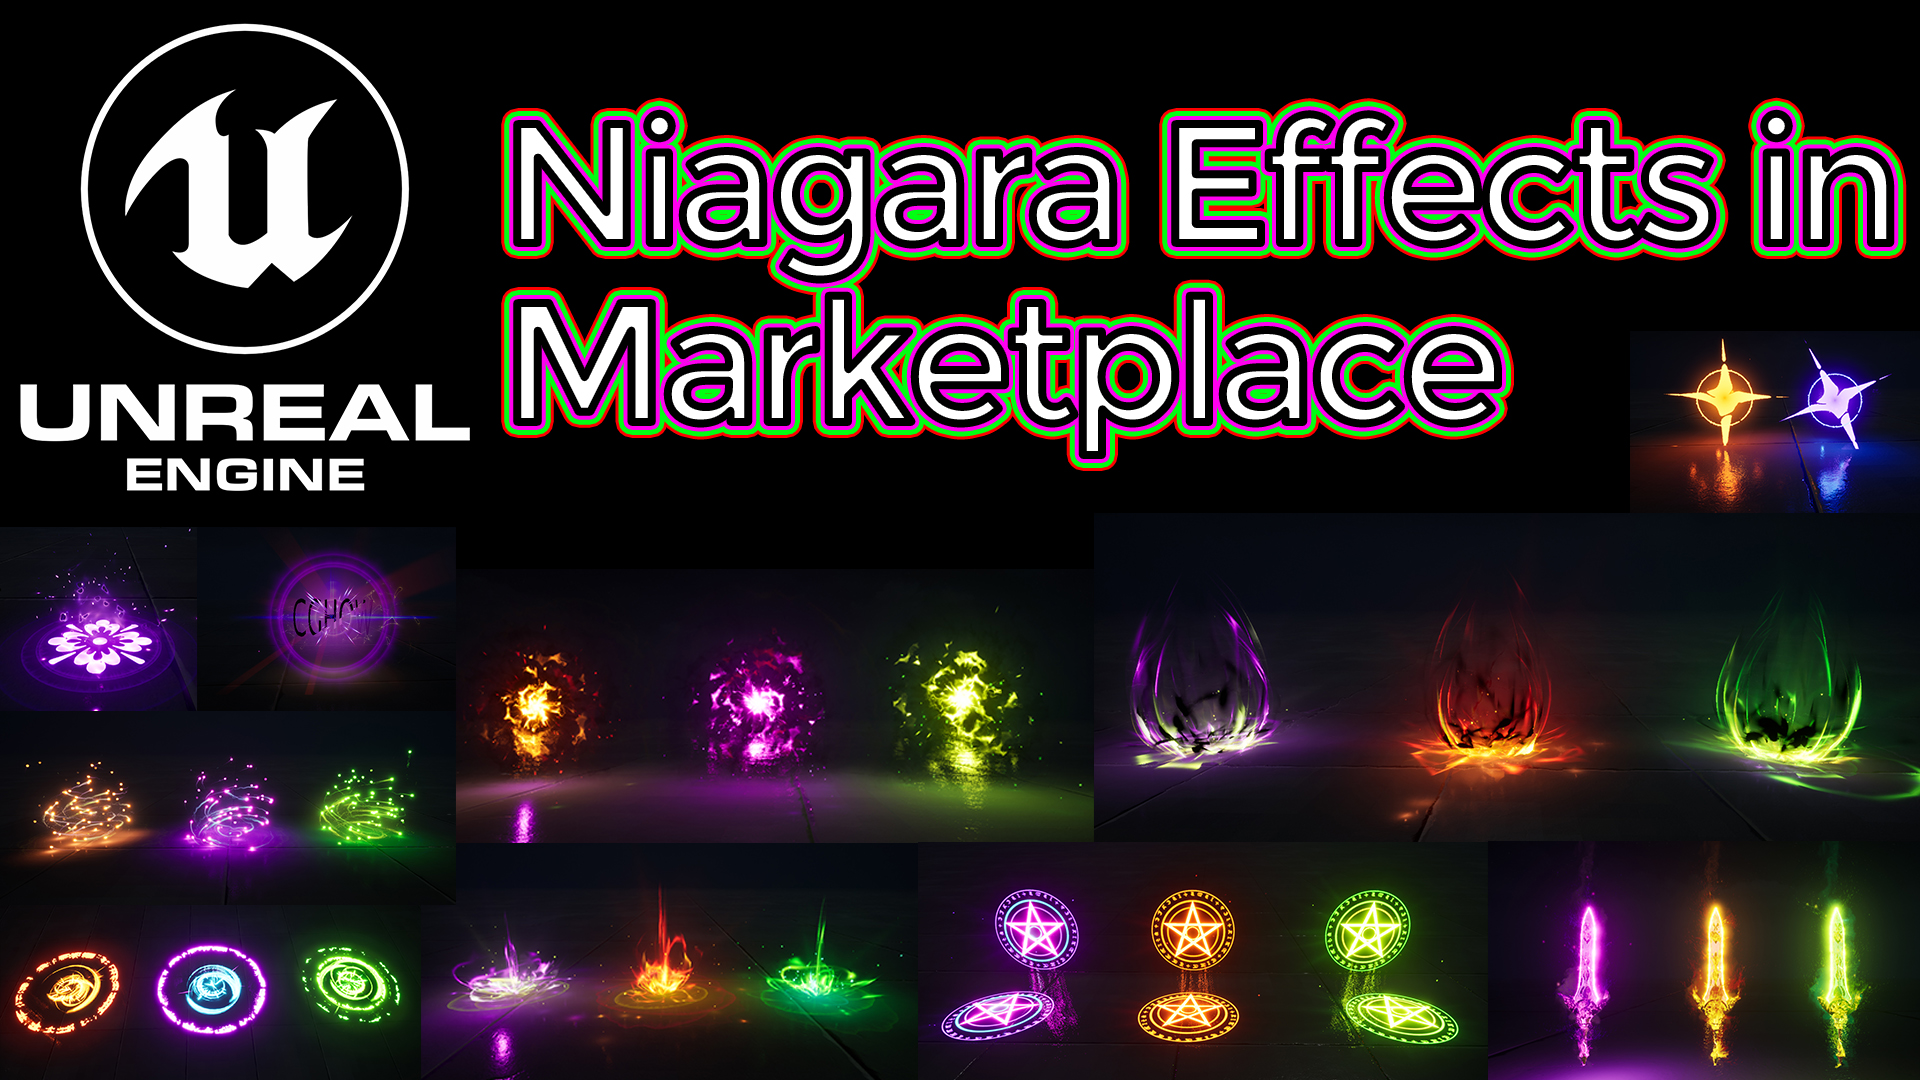 Unreal Engine Niagara Effects in Marketplace